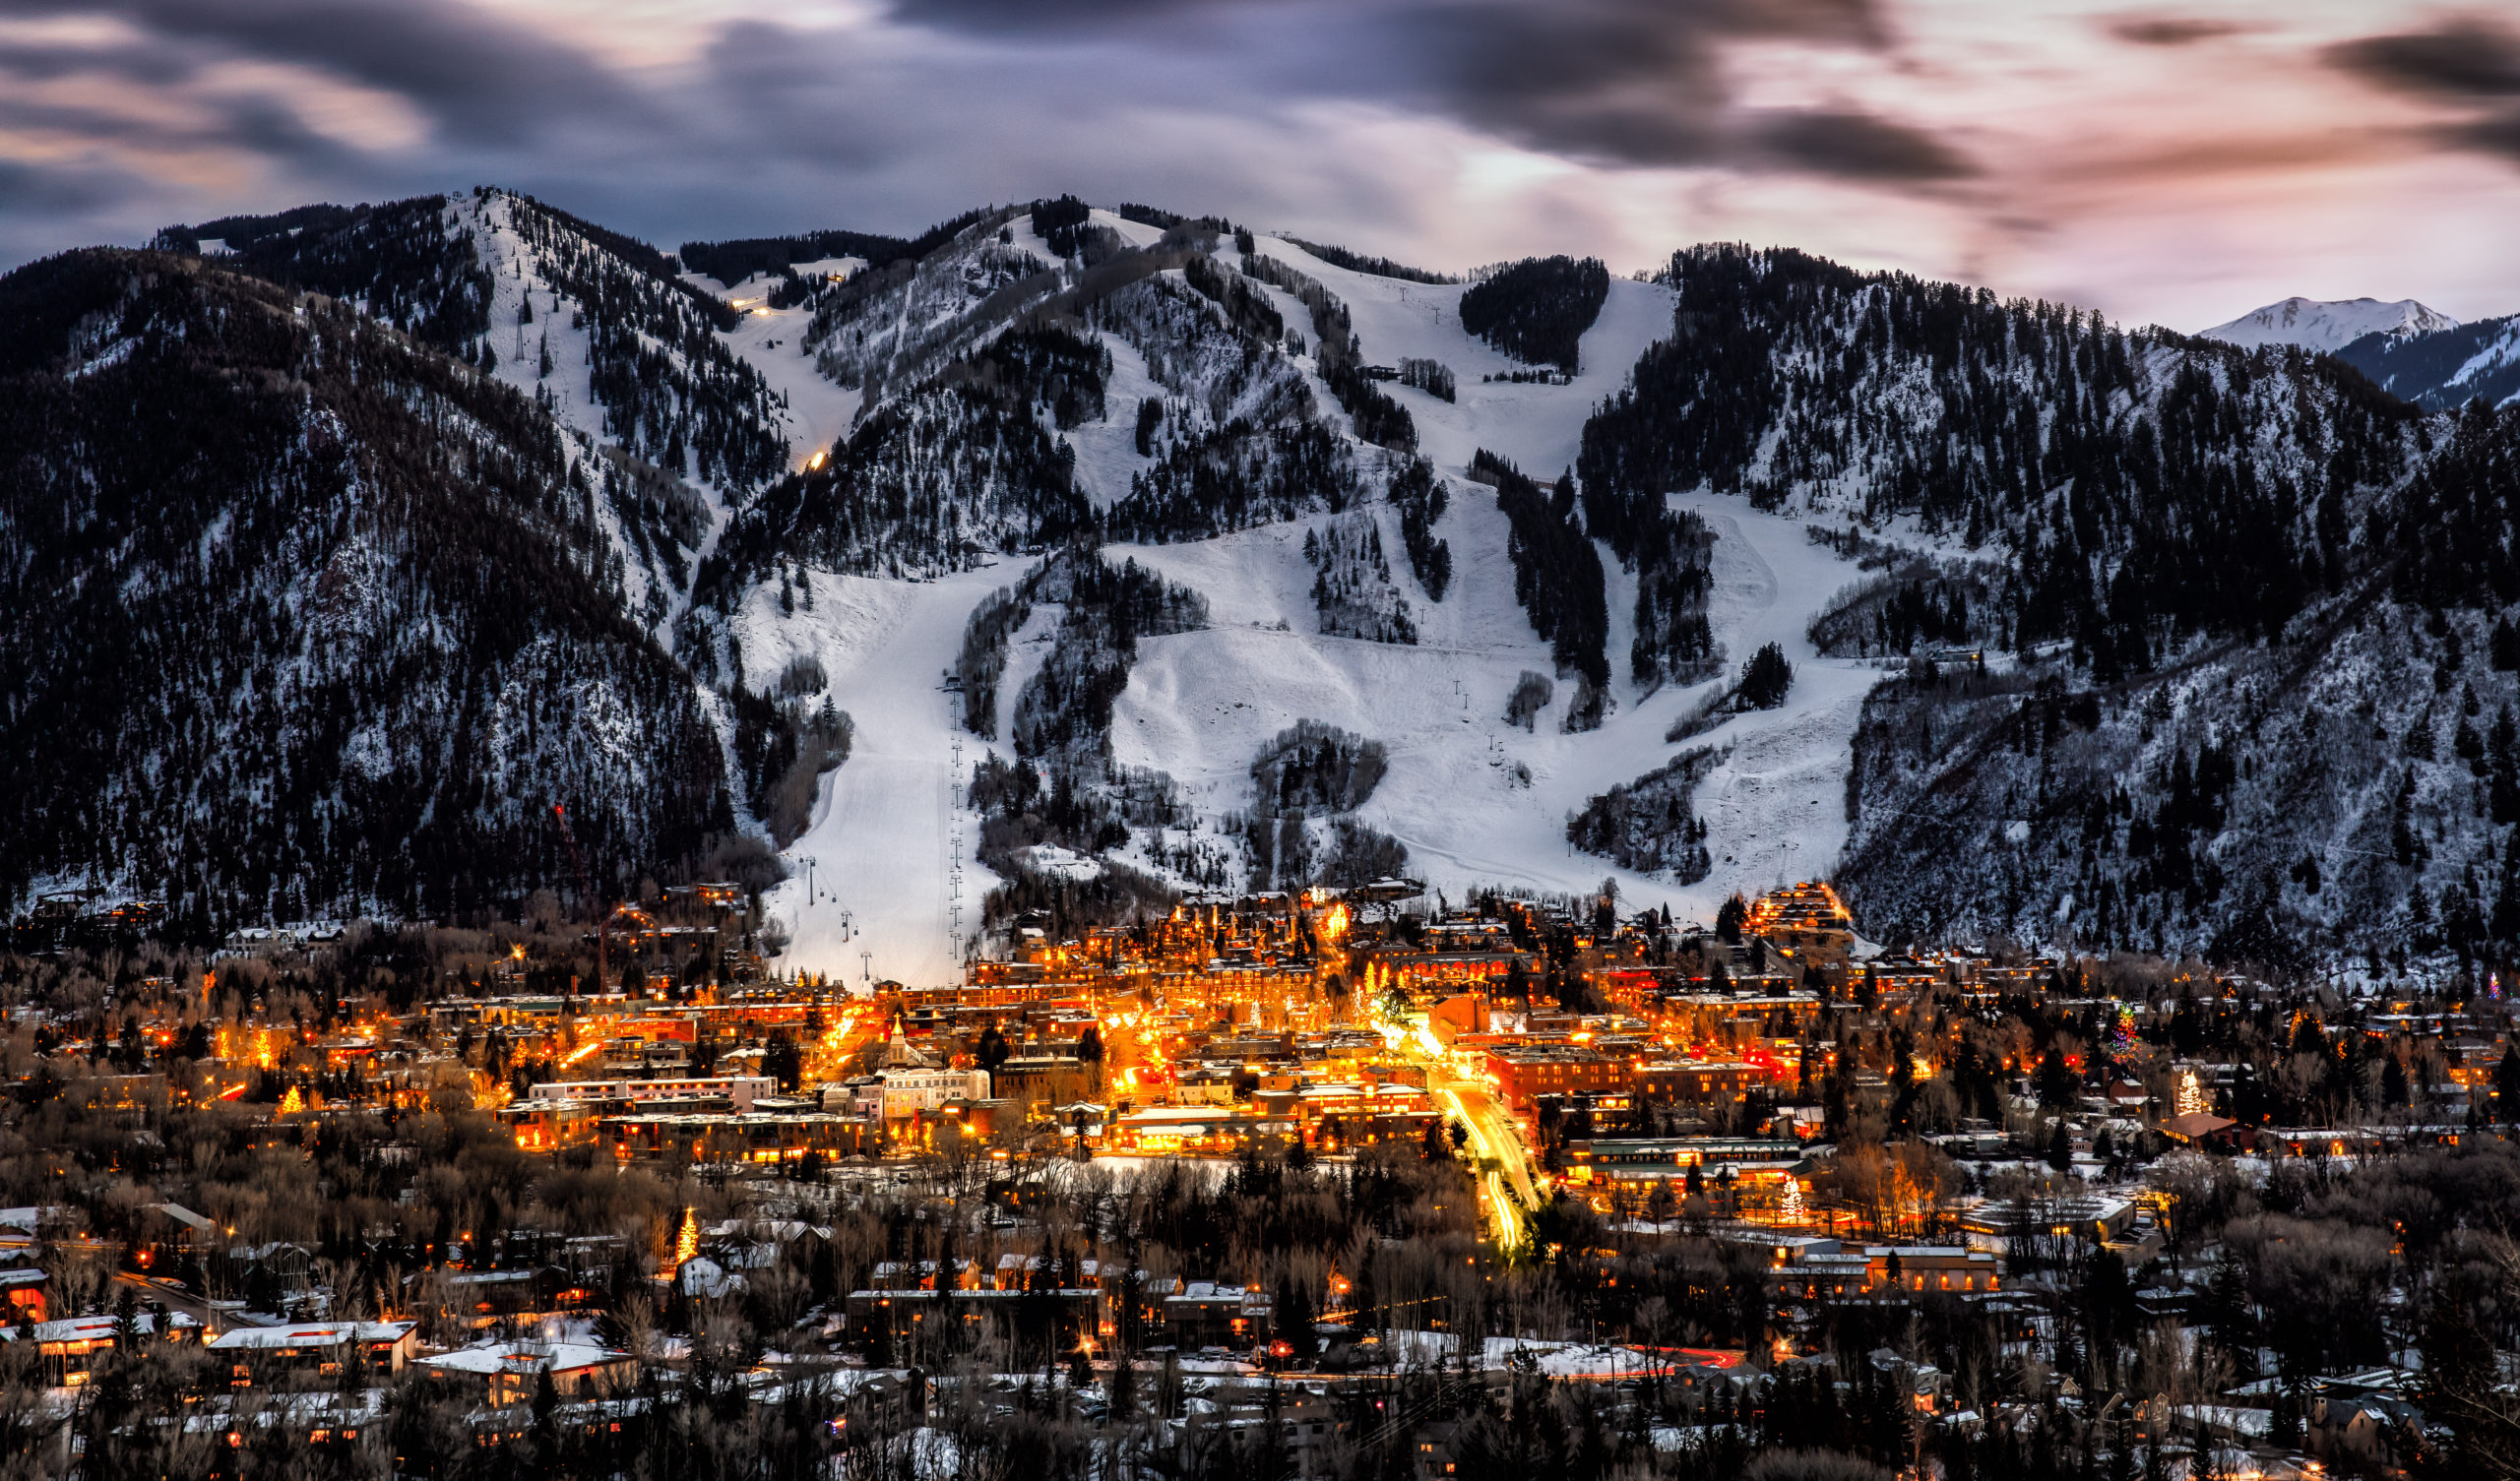 View of town of Aspen, Colorado and mountains in back